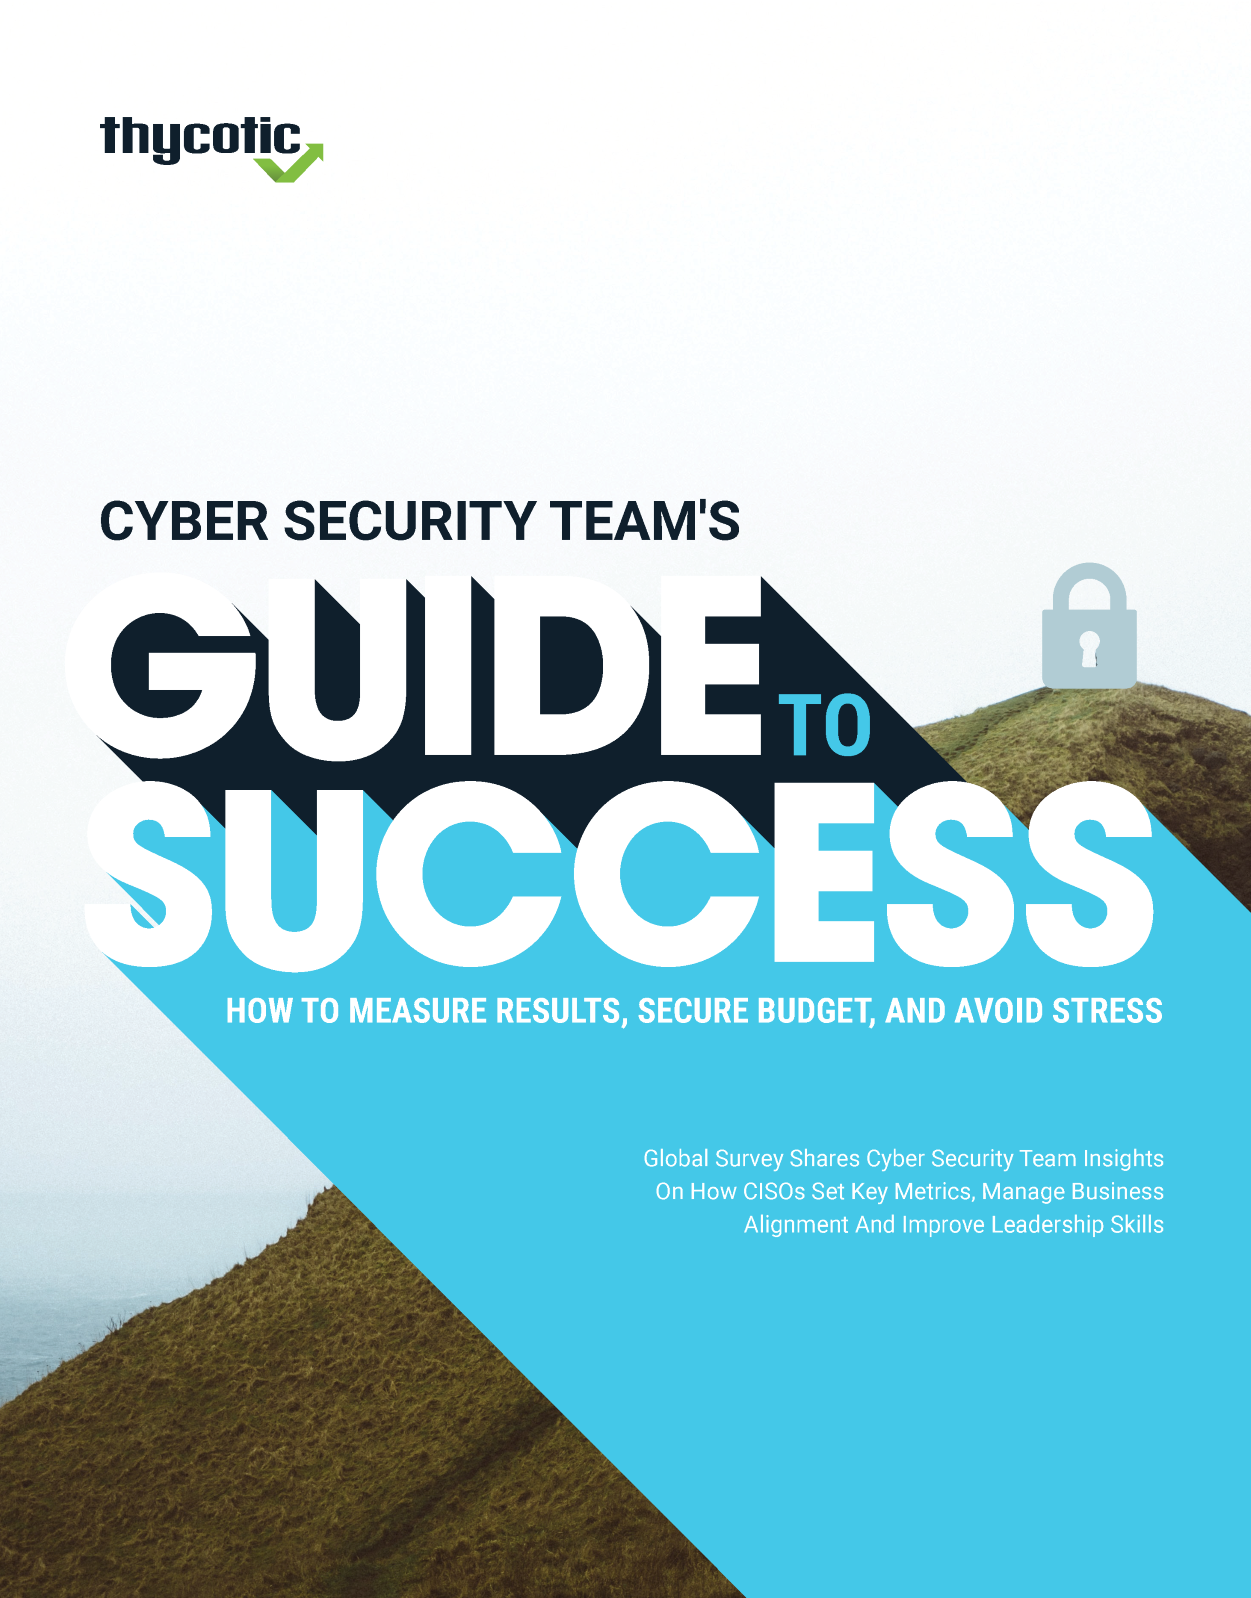 Cyber Security Teams' Guide to Success